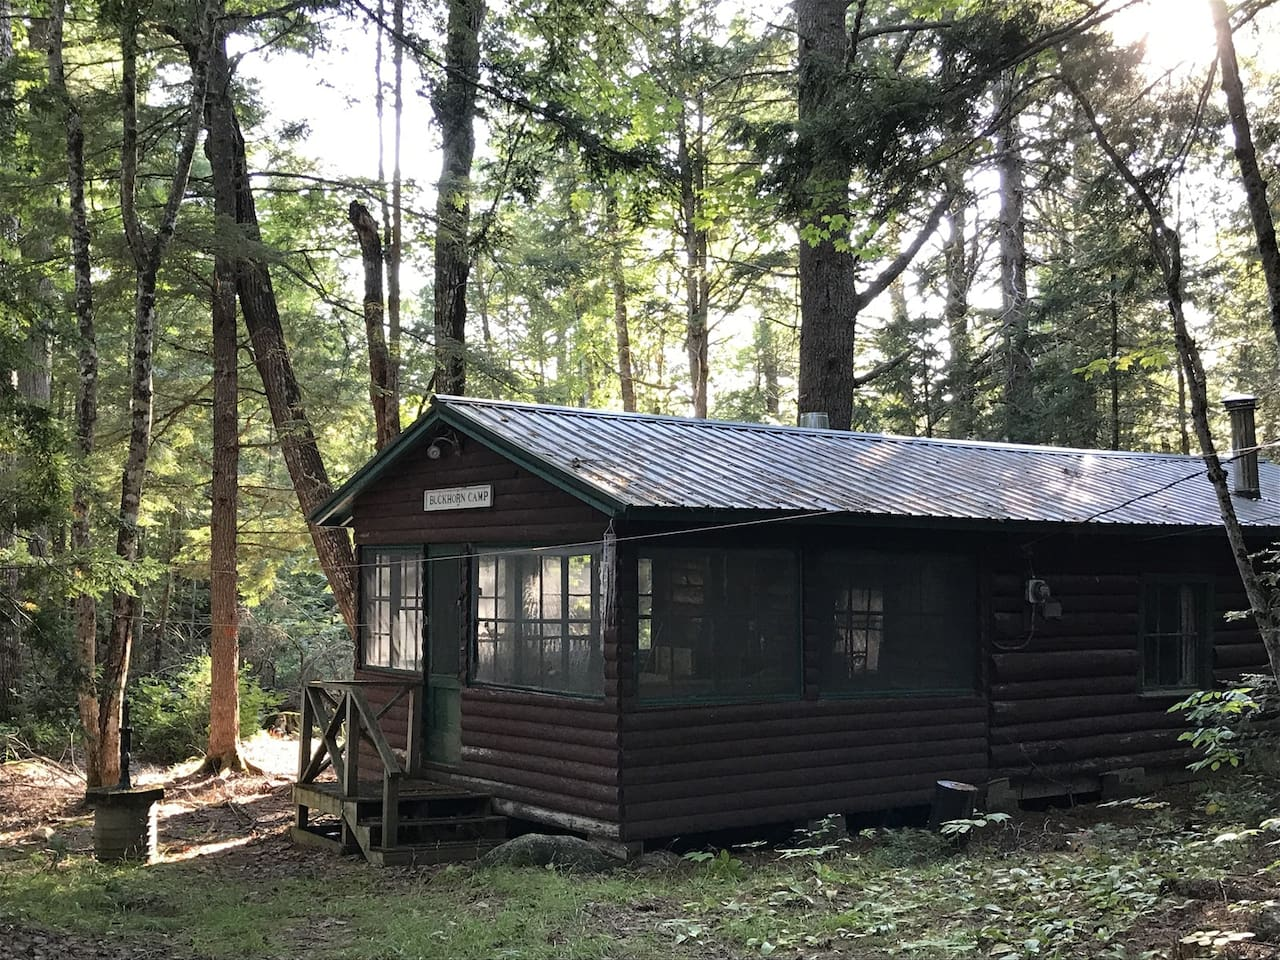 Penobscot Log Cabin in the Woods